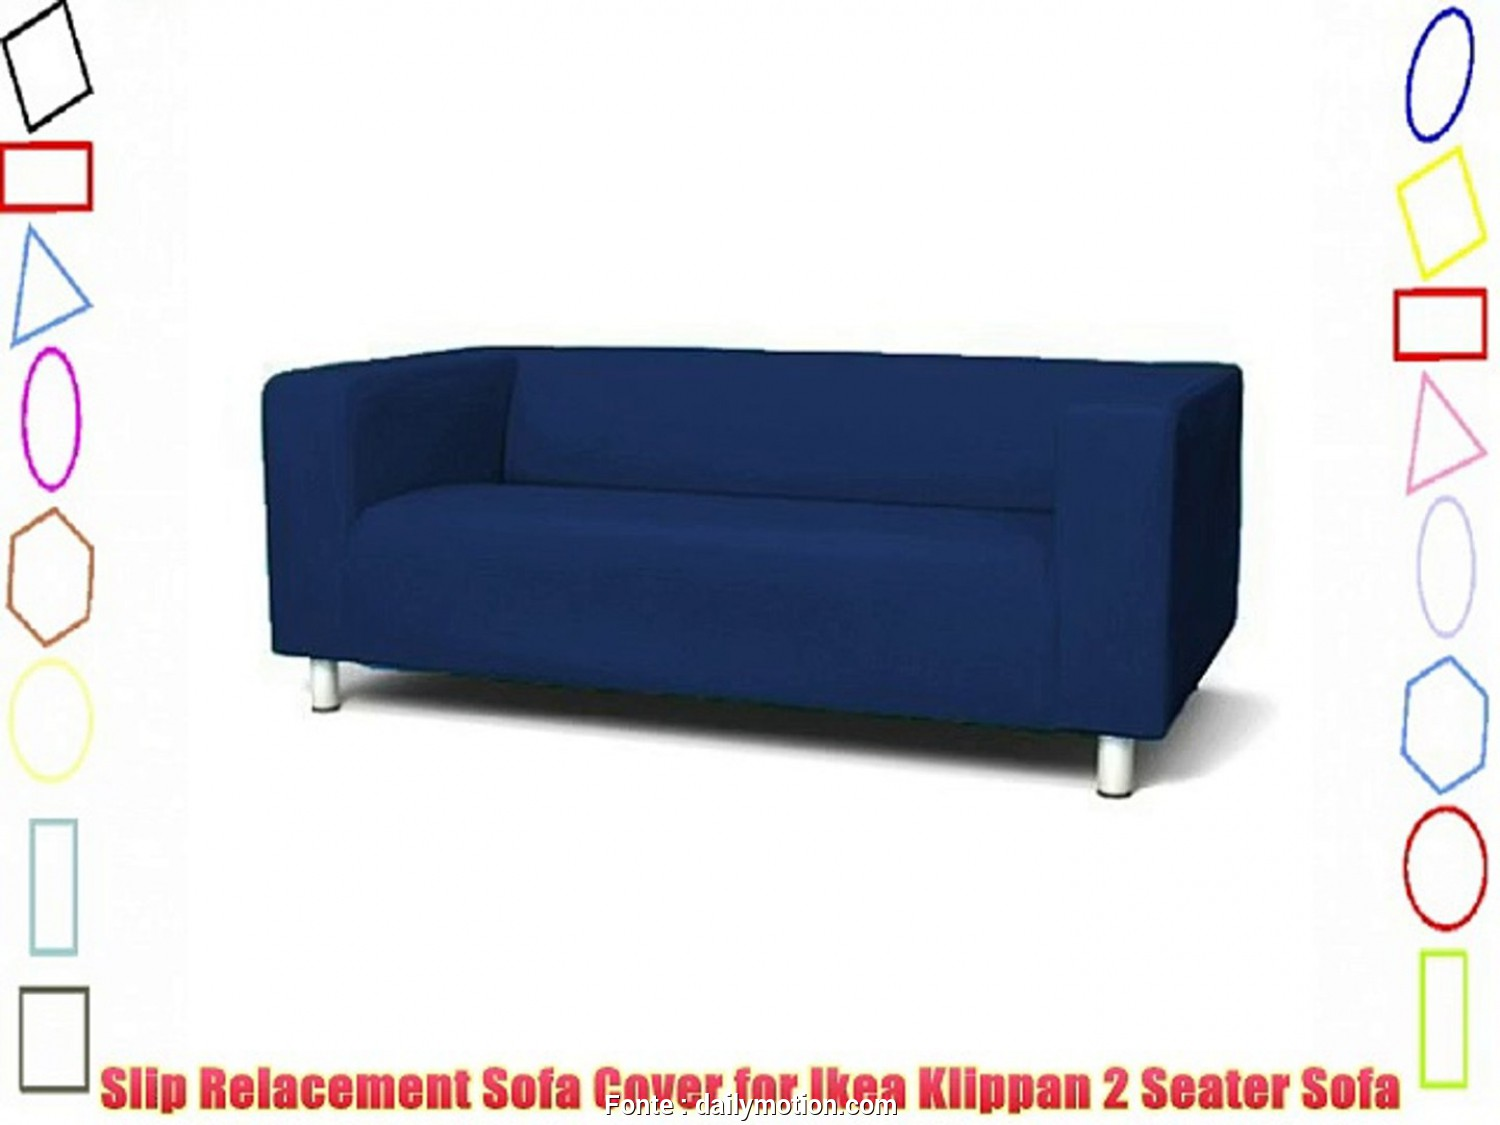 Klippan Ikea Indonesia, Bellissimo Sofa Slip Replacement Cover, Ikea Klippan 2 Seater Sofa In Royal Blue With Velcro Secure, Video Dailymotion